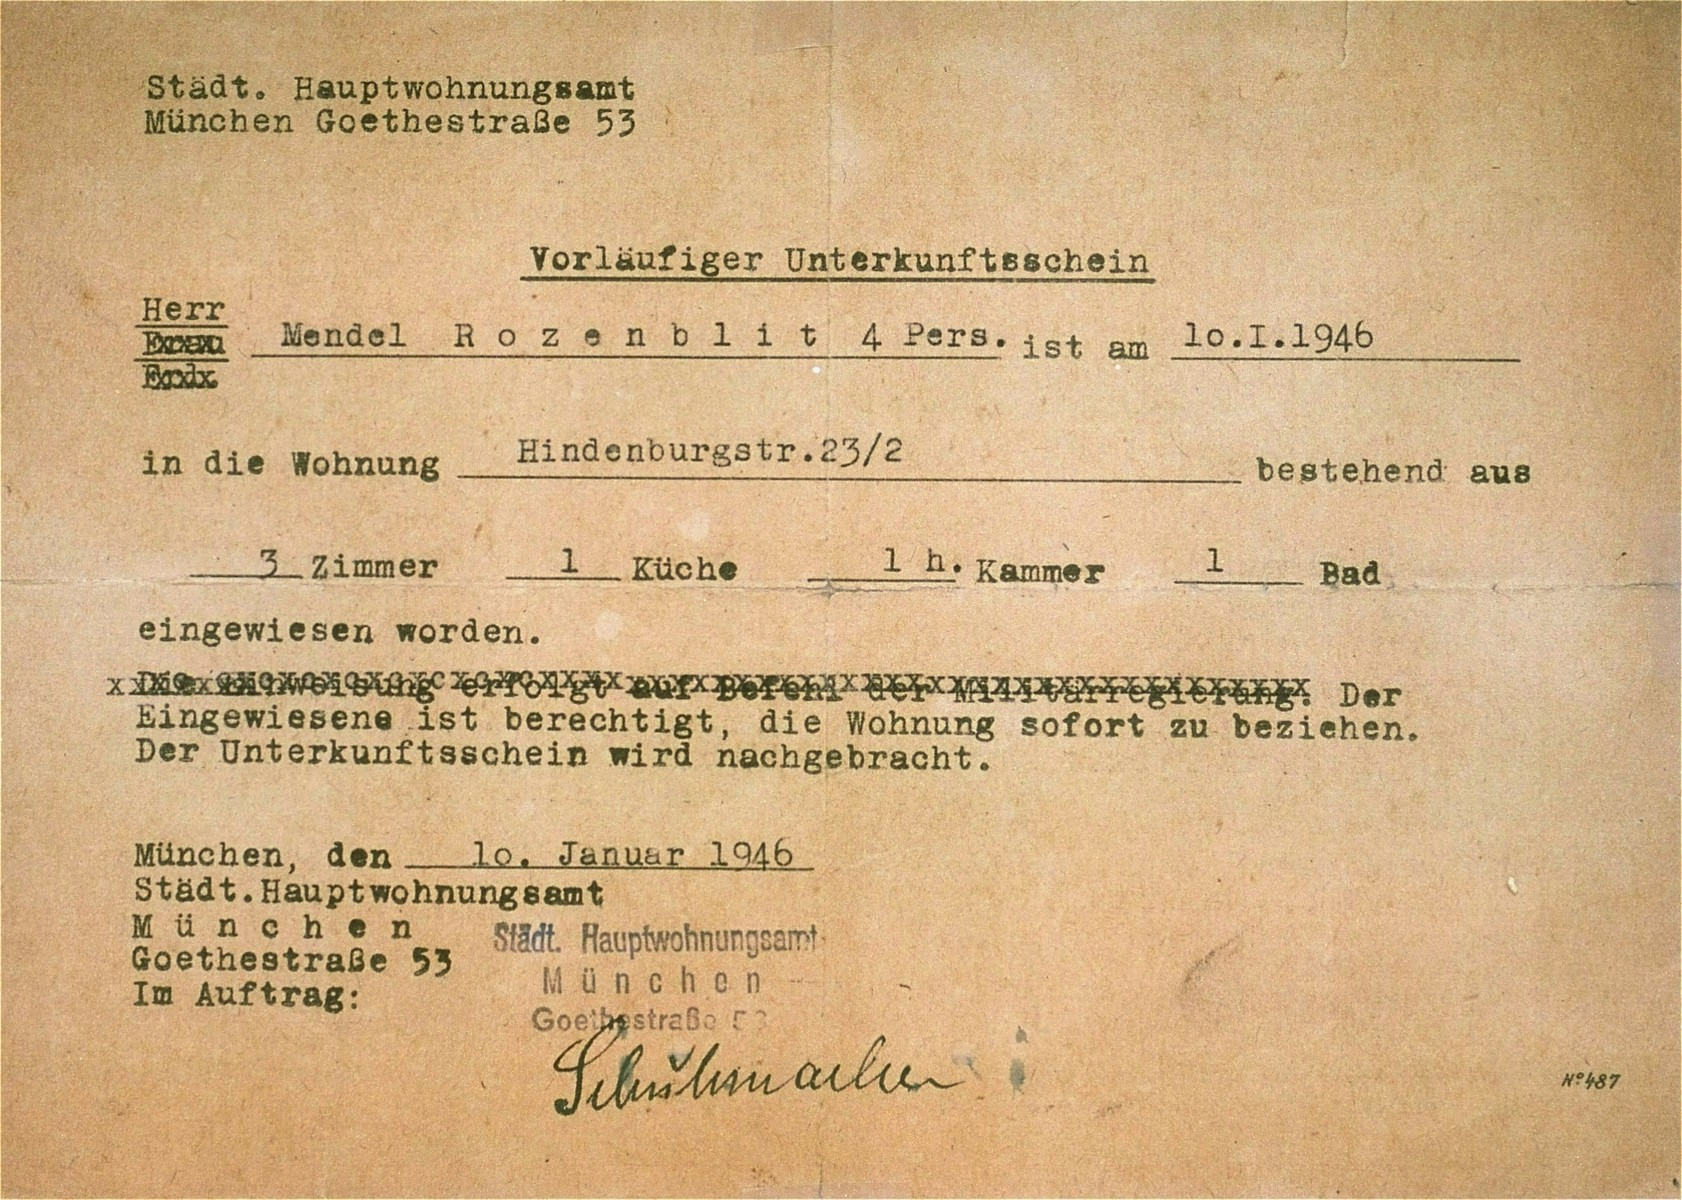 A provisional residence permit issued by the Munich housing office to Mendel Rozenblit, a Jewish displaced person, living in a three-room apartment on Hindenburgstrasse.